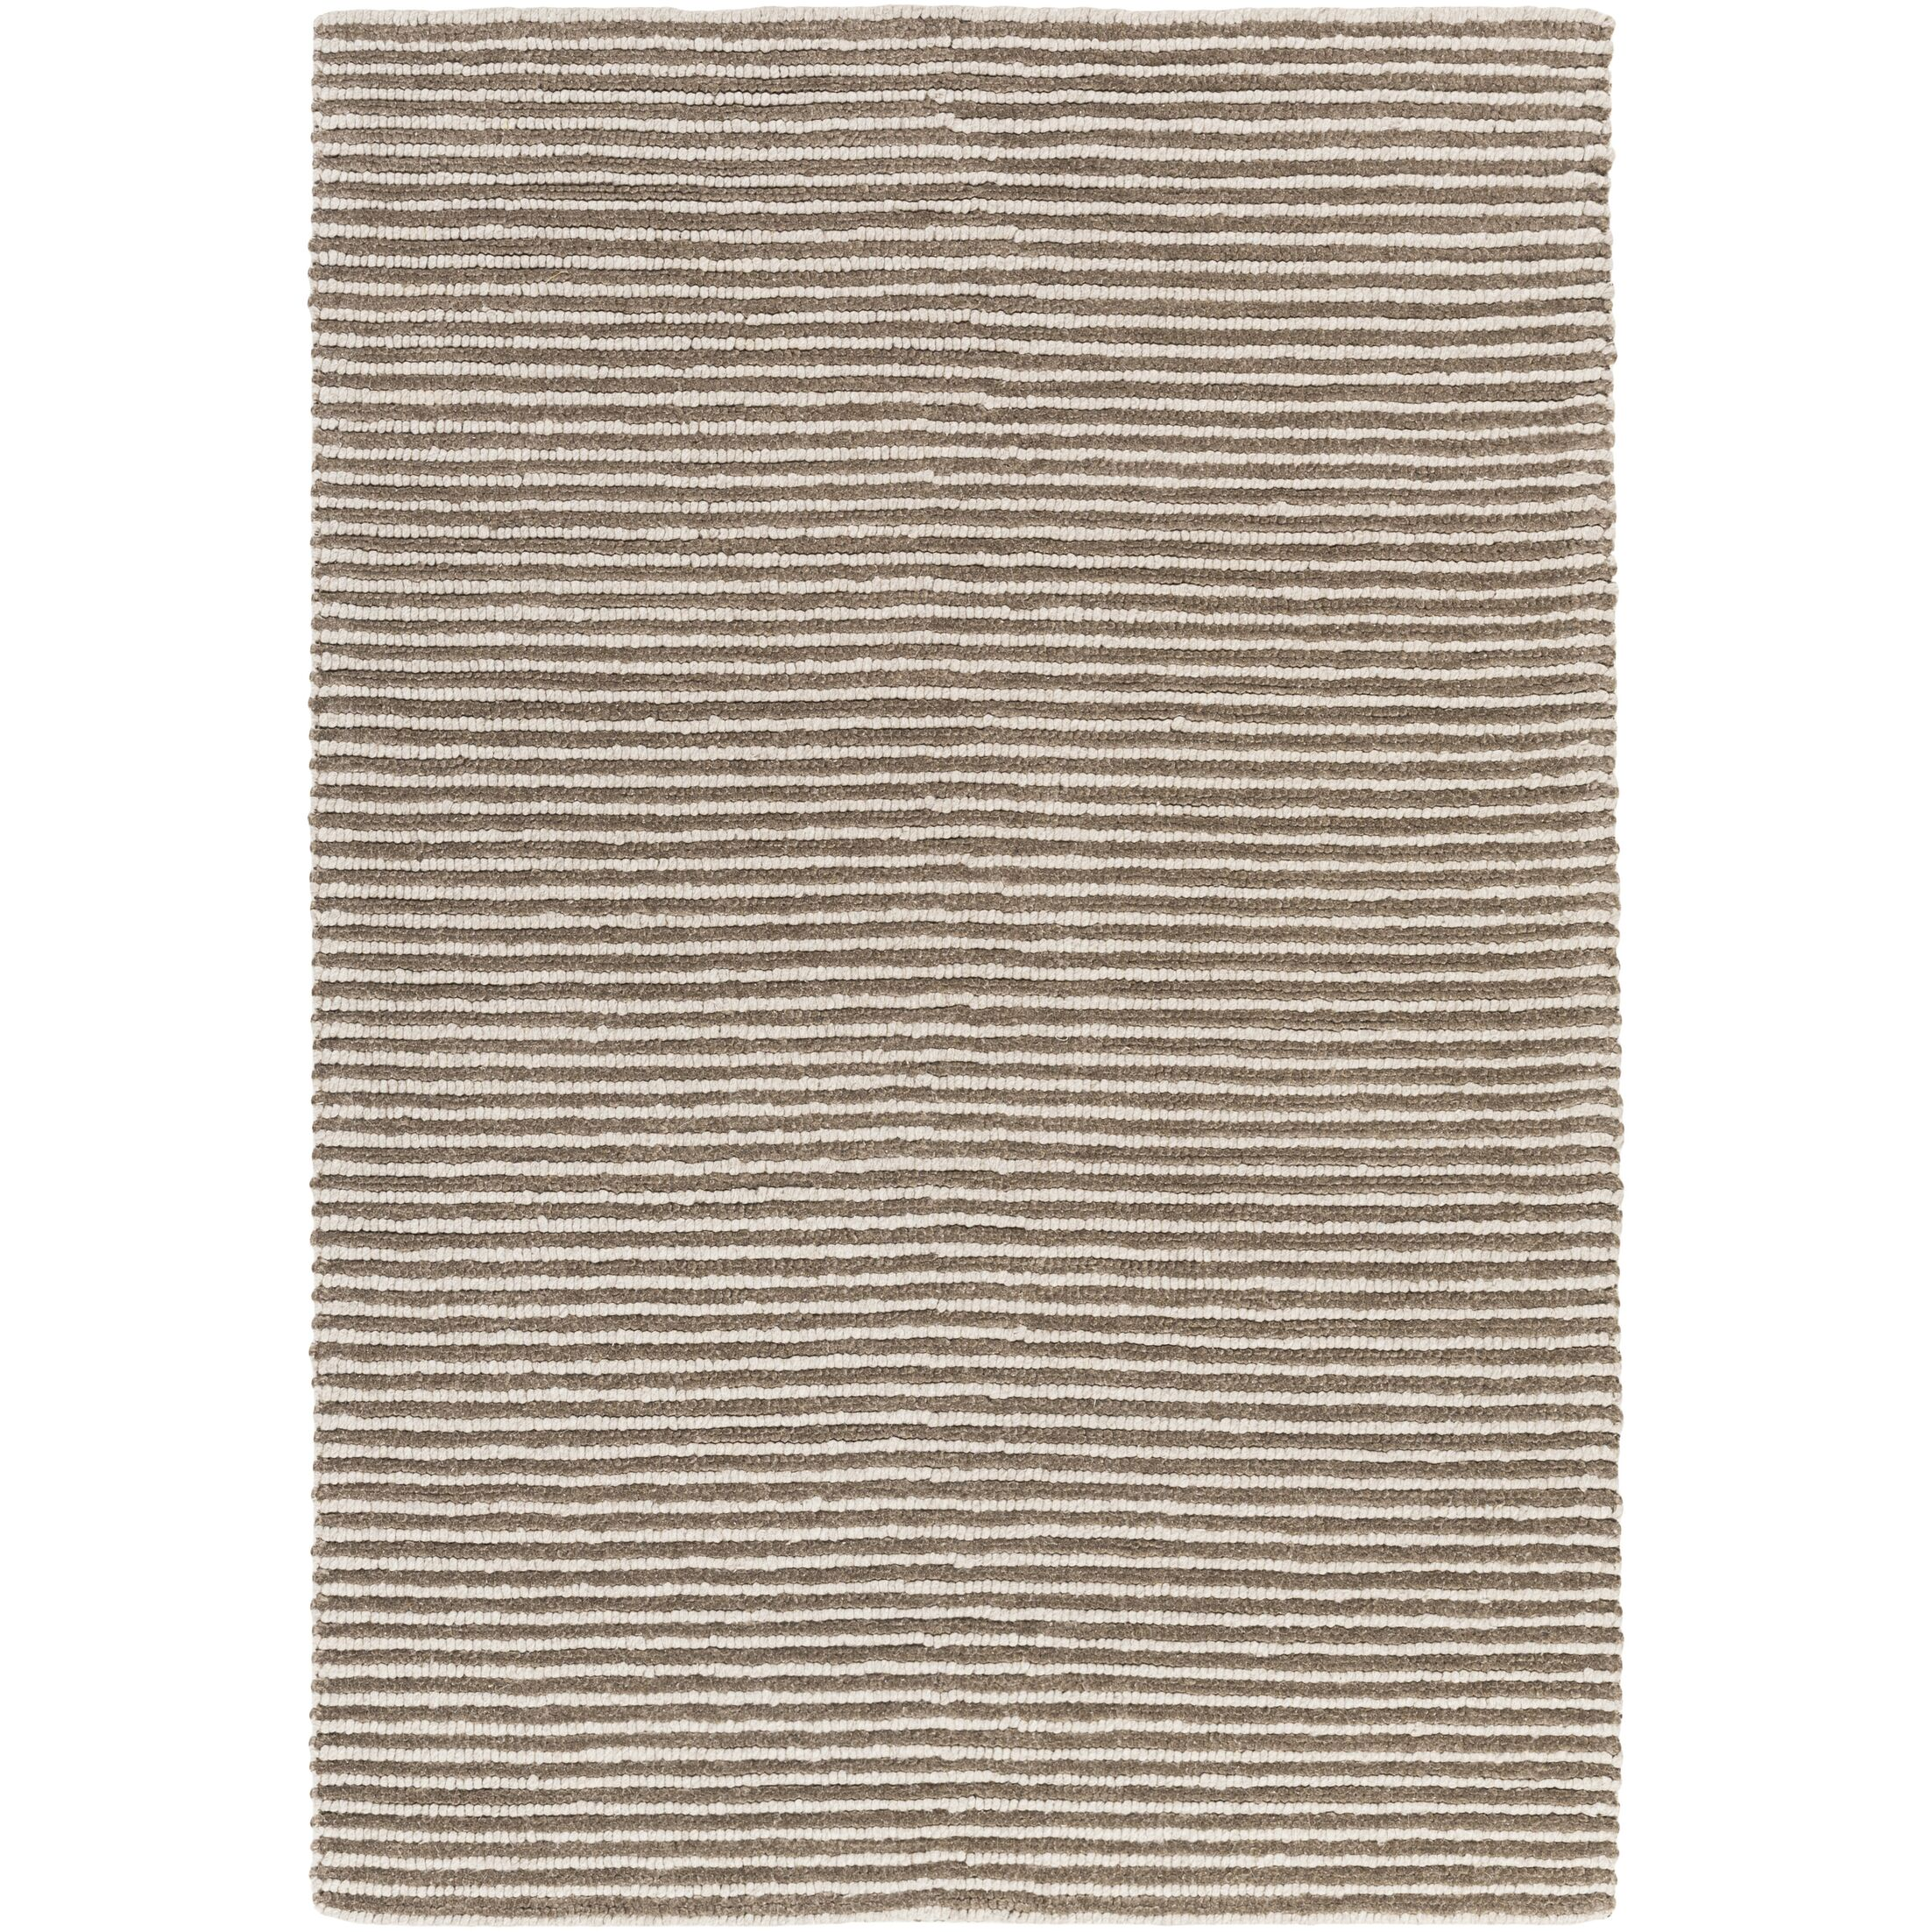 Acton Hand-Woven Camel/White Area Rug Rug Size: Rectangle 5' x 7'6